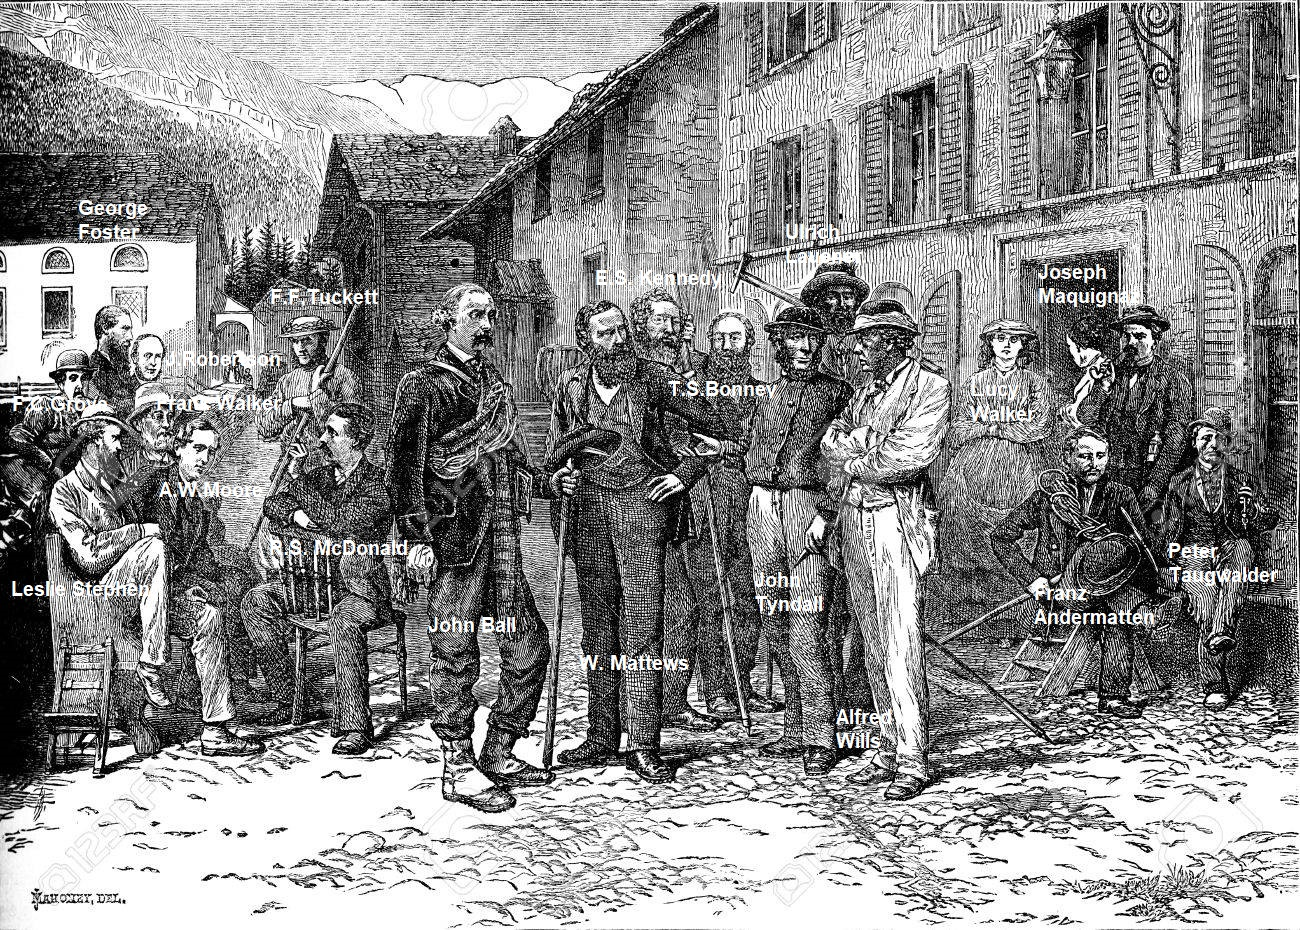 38395703-the-hotel-monte-rosa-in-zermatt-guides-and-tourists-vintage-engraved-illustration-le-tour-du-monde-t